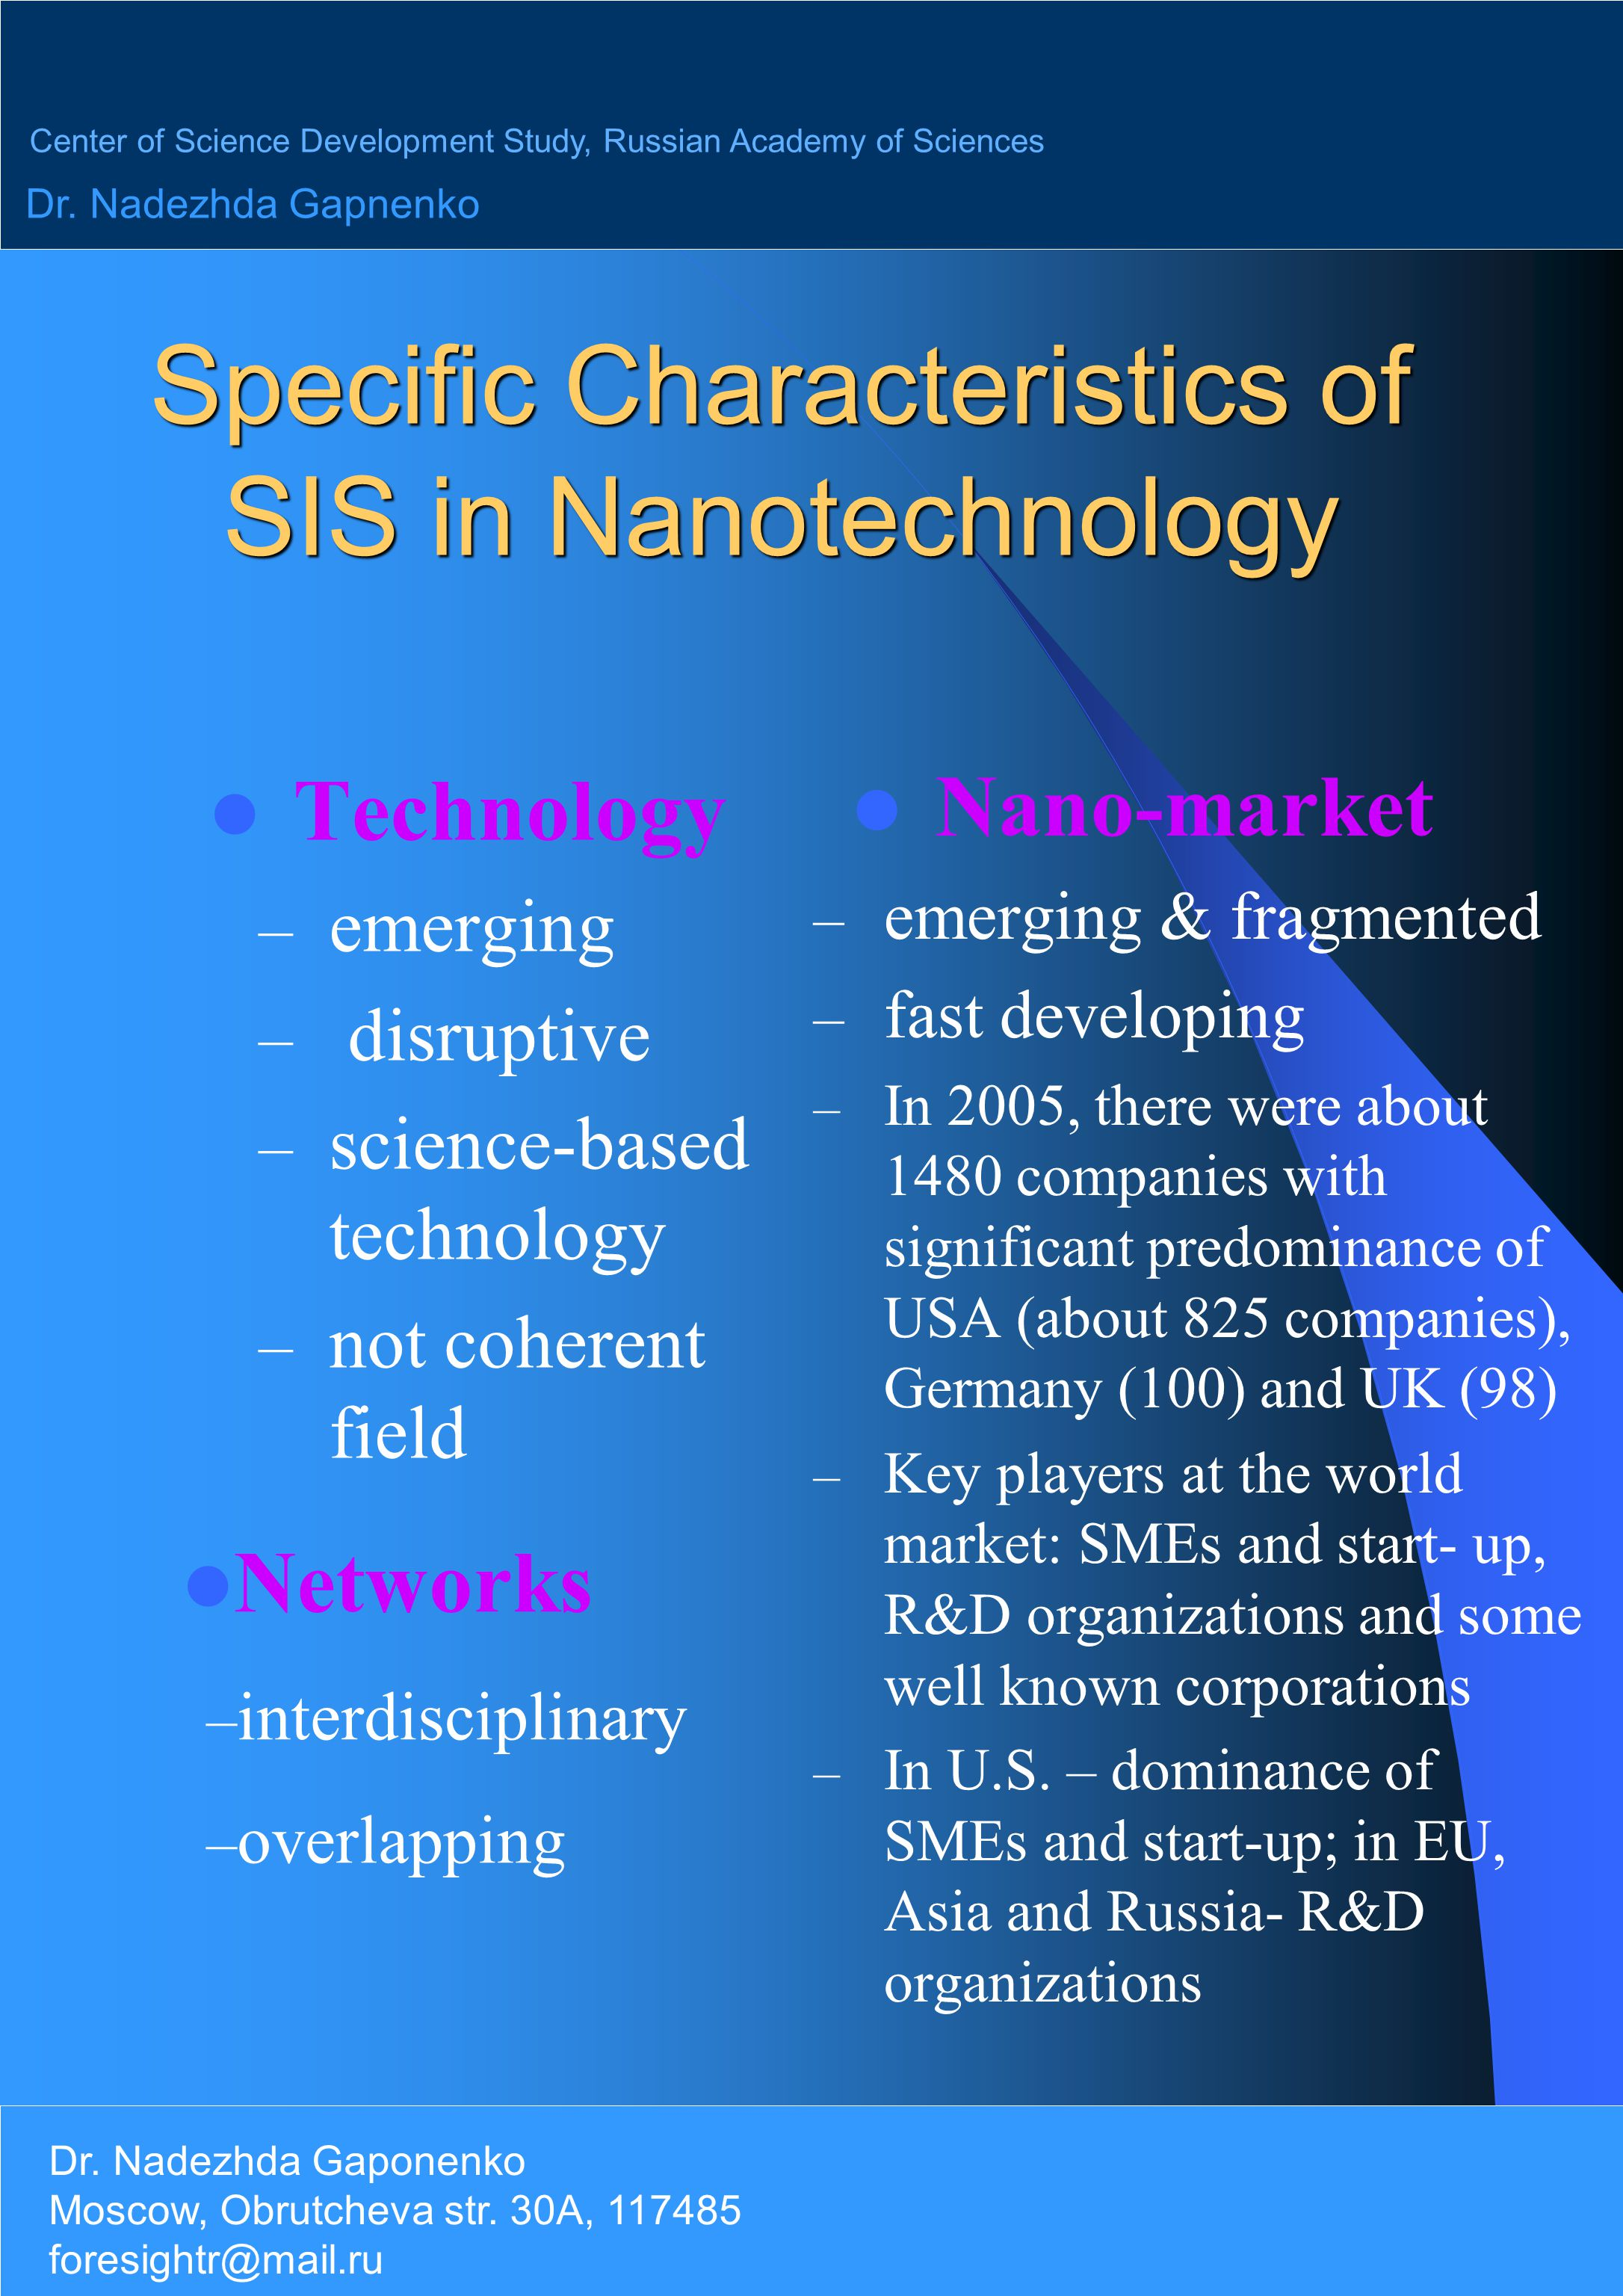 Specific Characteristics of SIS in Nanotechnology Technology – emerging – disruptive – science-based technology – not coherent field Nano-market – emerging & fragmented – fast developing – In 2005, there were about 1480 companies with significant predominance of USA (about 825 companies), Germany (100) and UK (98) – Key players at the world market: SMEs and start- up, R&D organizations and some well known corporations – In U.S.